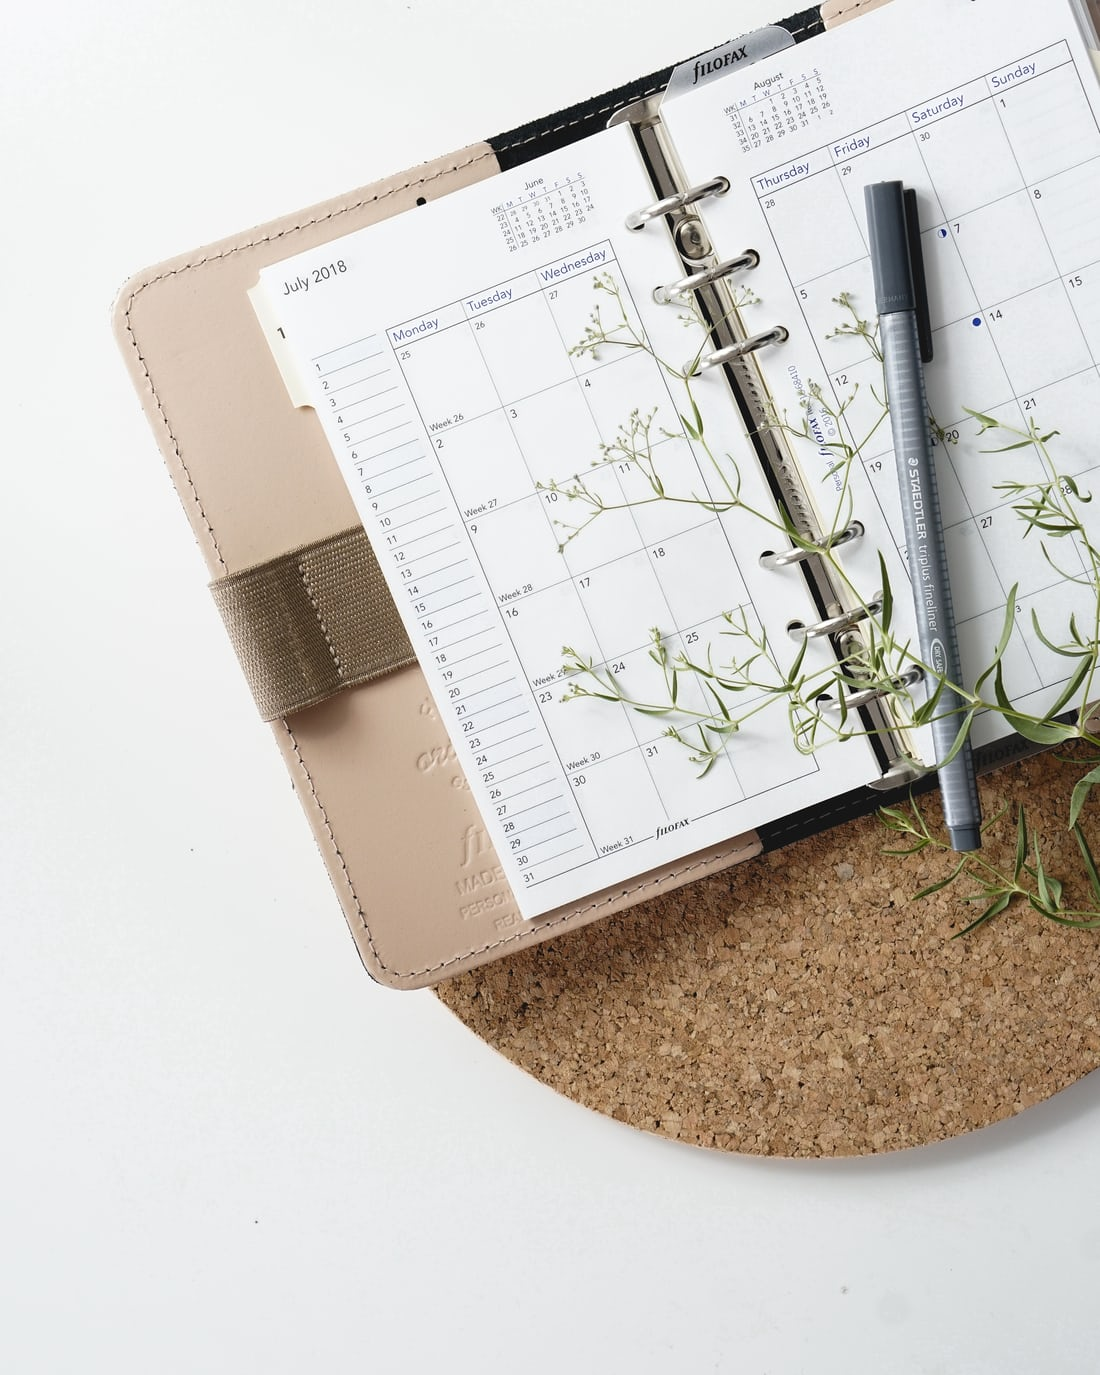 Productivity Hacks For a new Month!